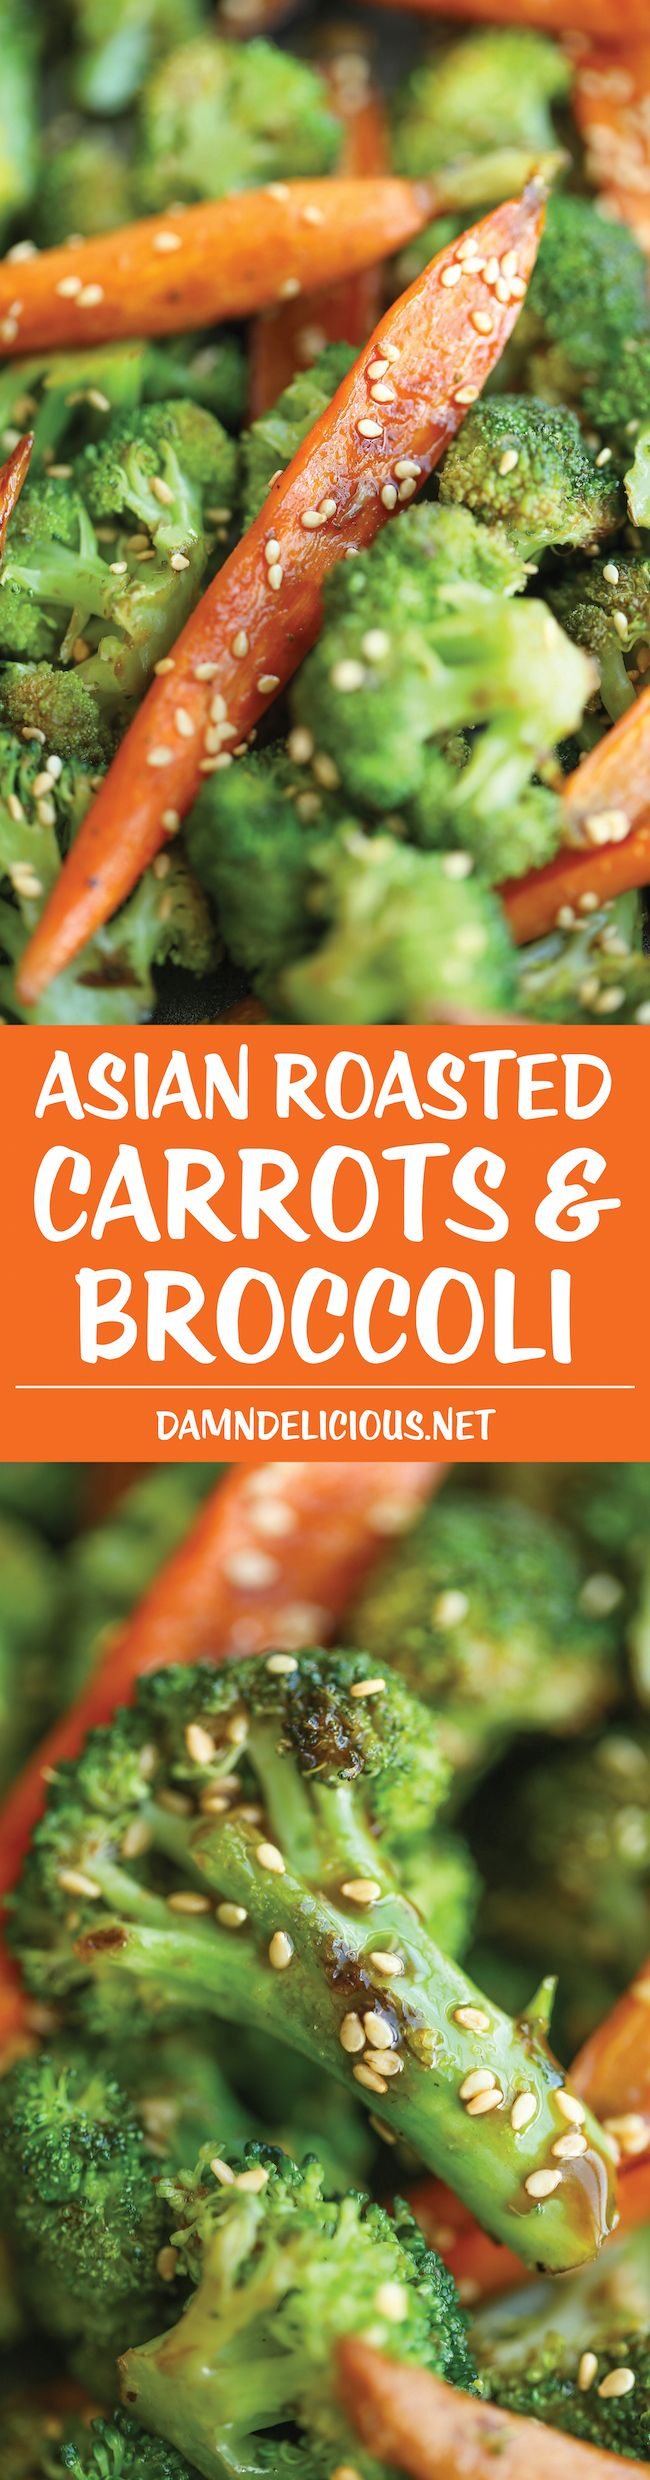 Recipe: Roasted Carrots and Broccoli by Bruce Bradley